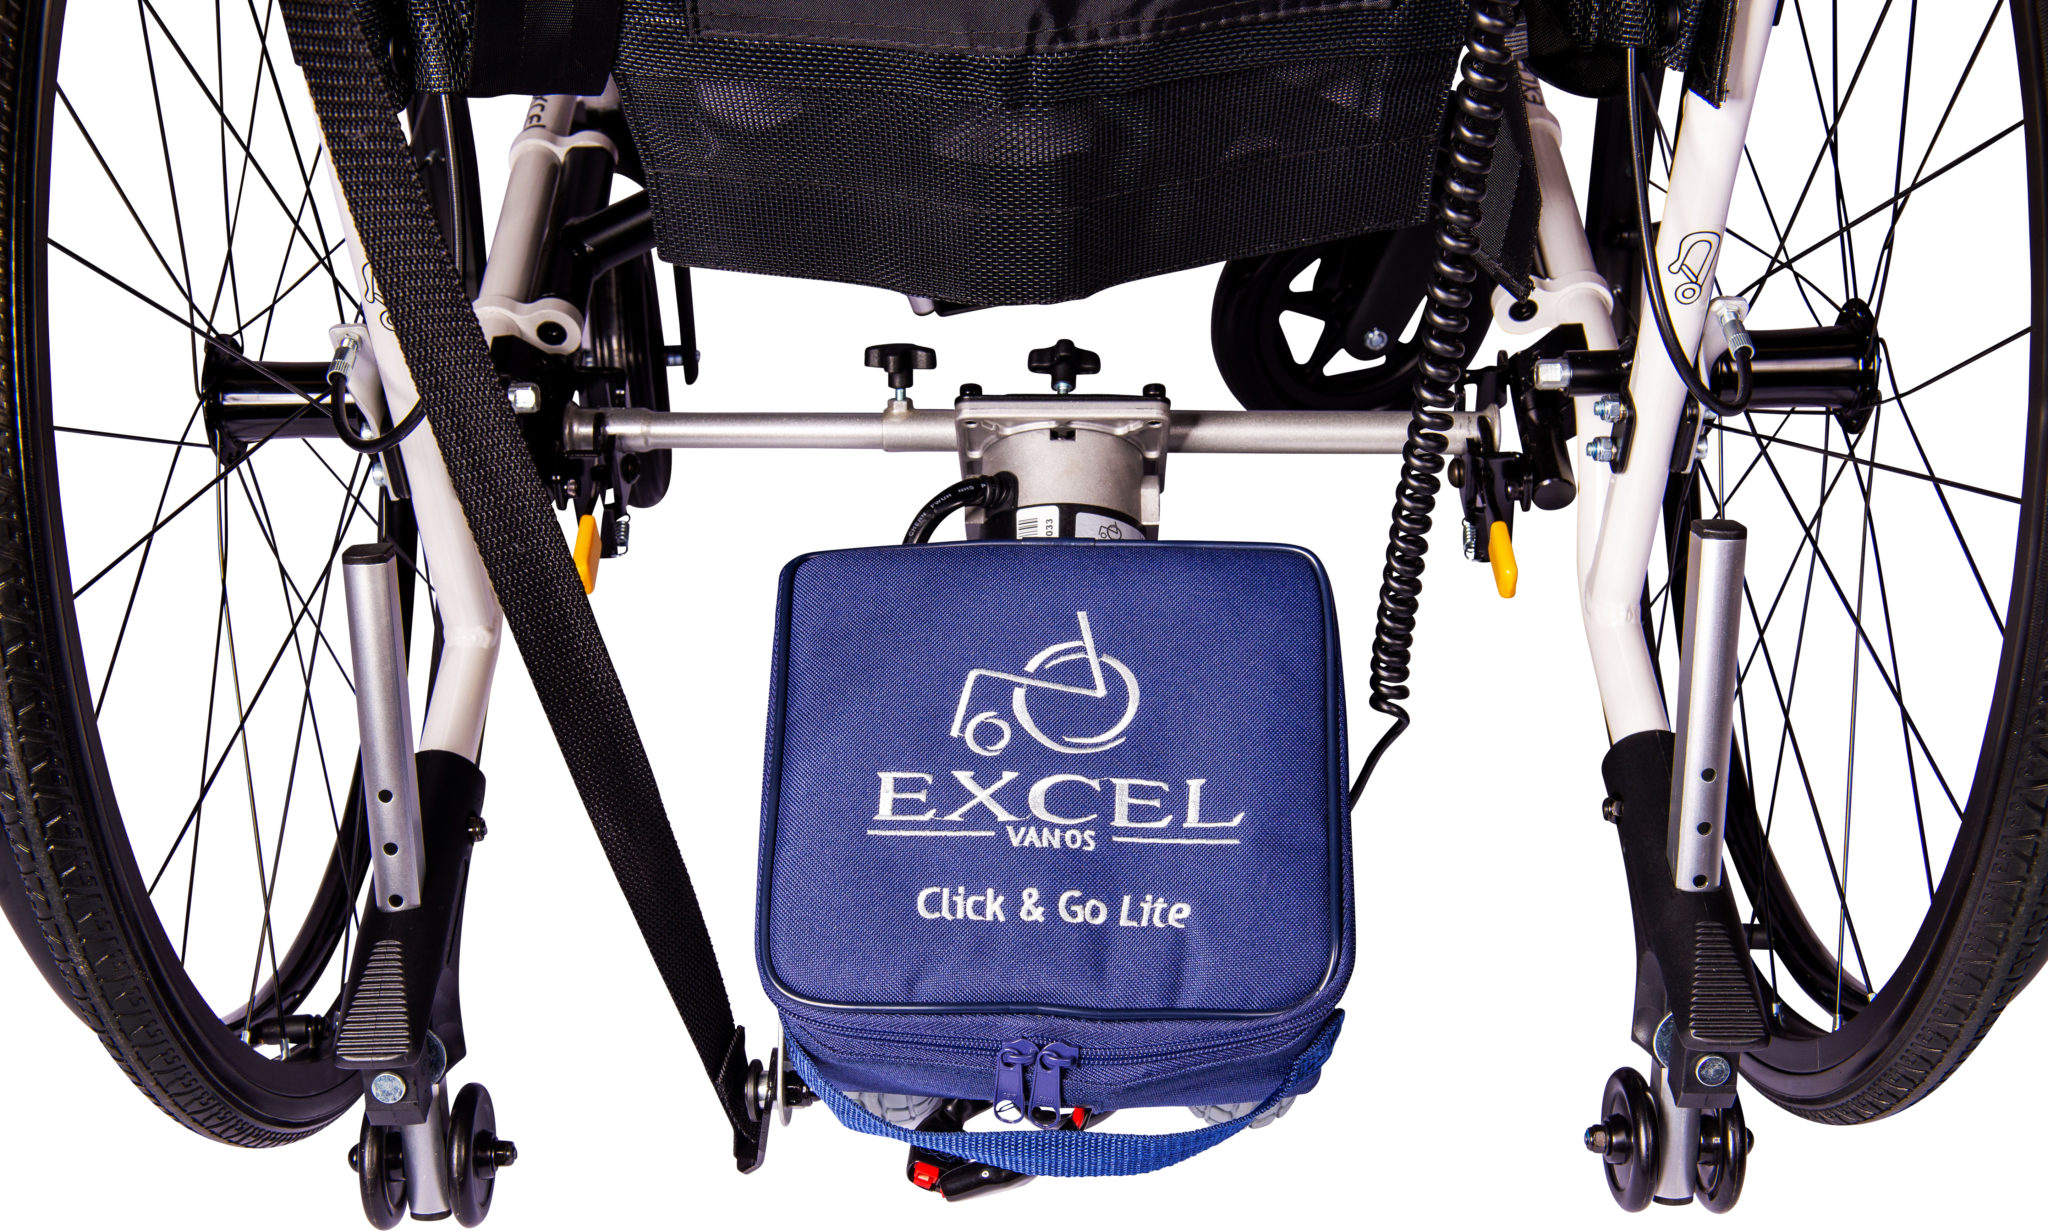 wheelchair-power-attachment-pack-excel-click-go-blue-ExcCliGoLPow-detail-1.jpg